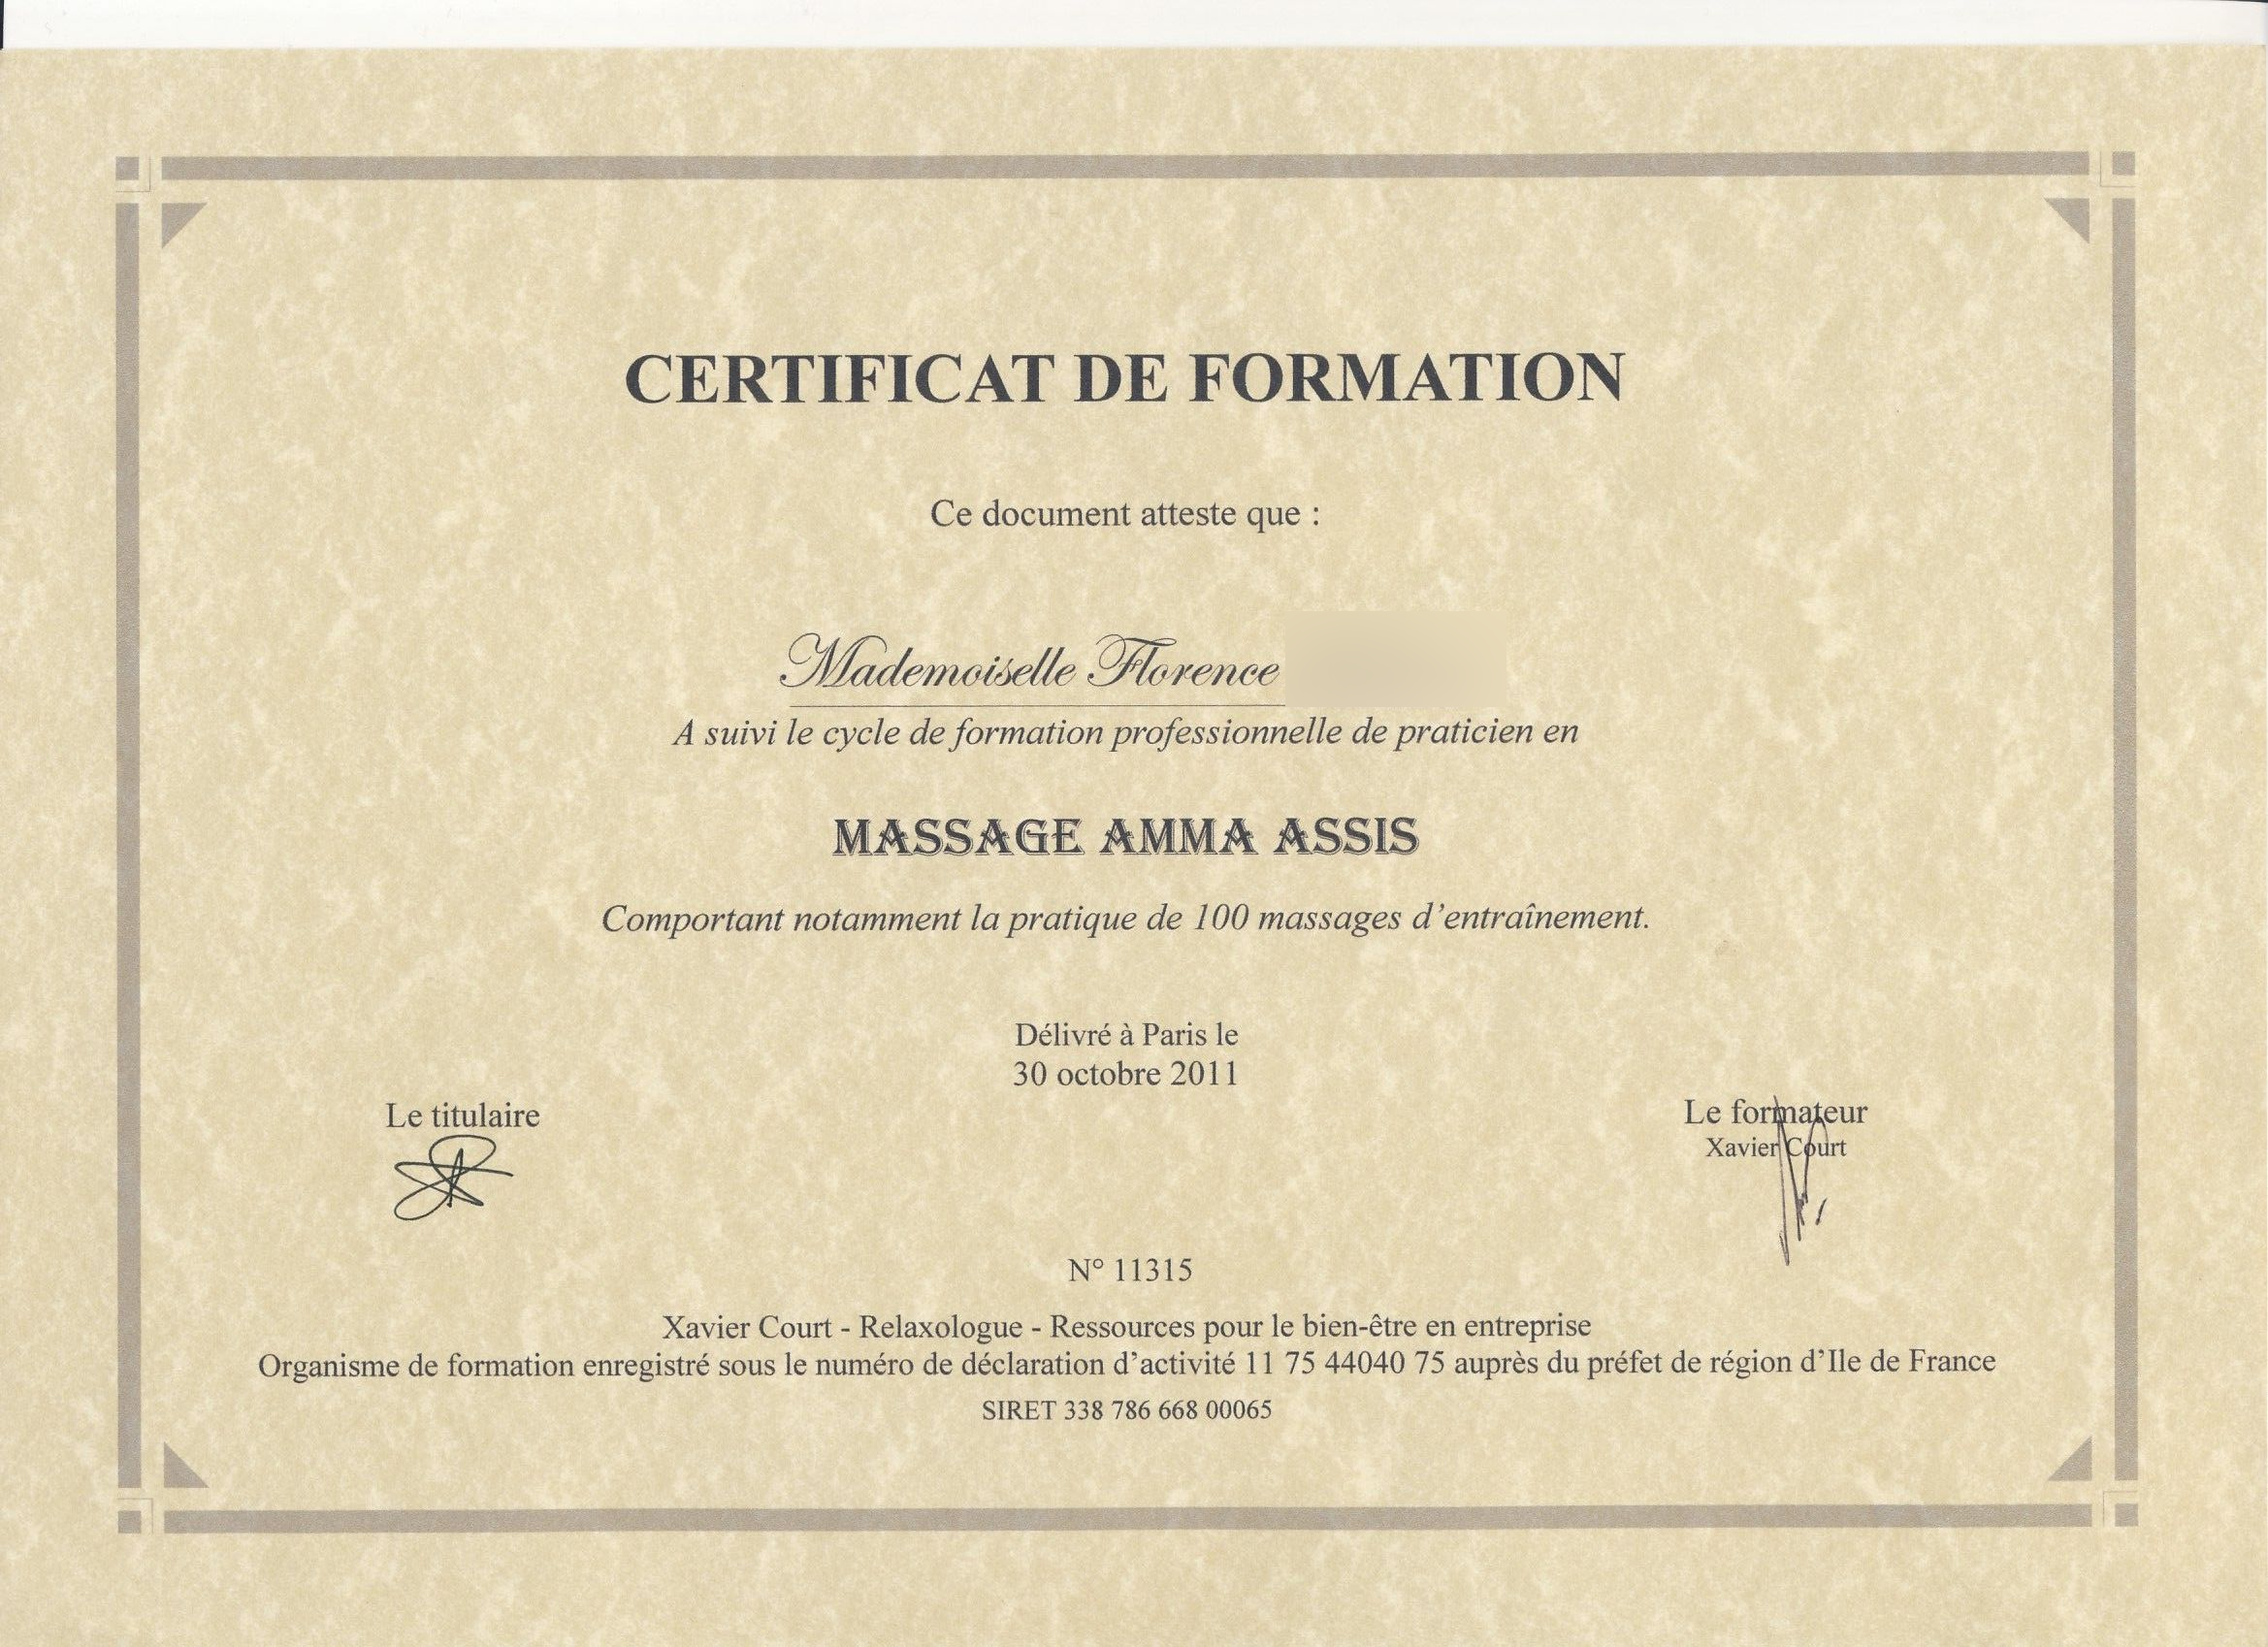 572b2af6e43ff_Certification amma assis.jpeg